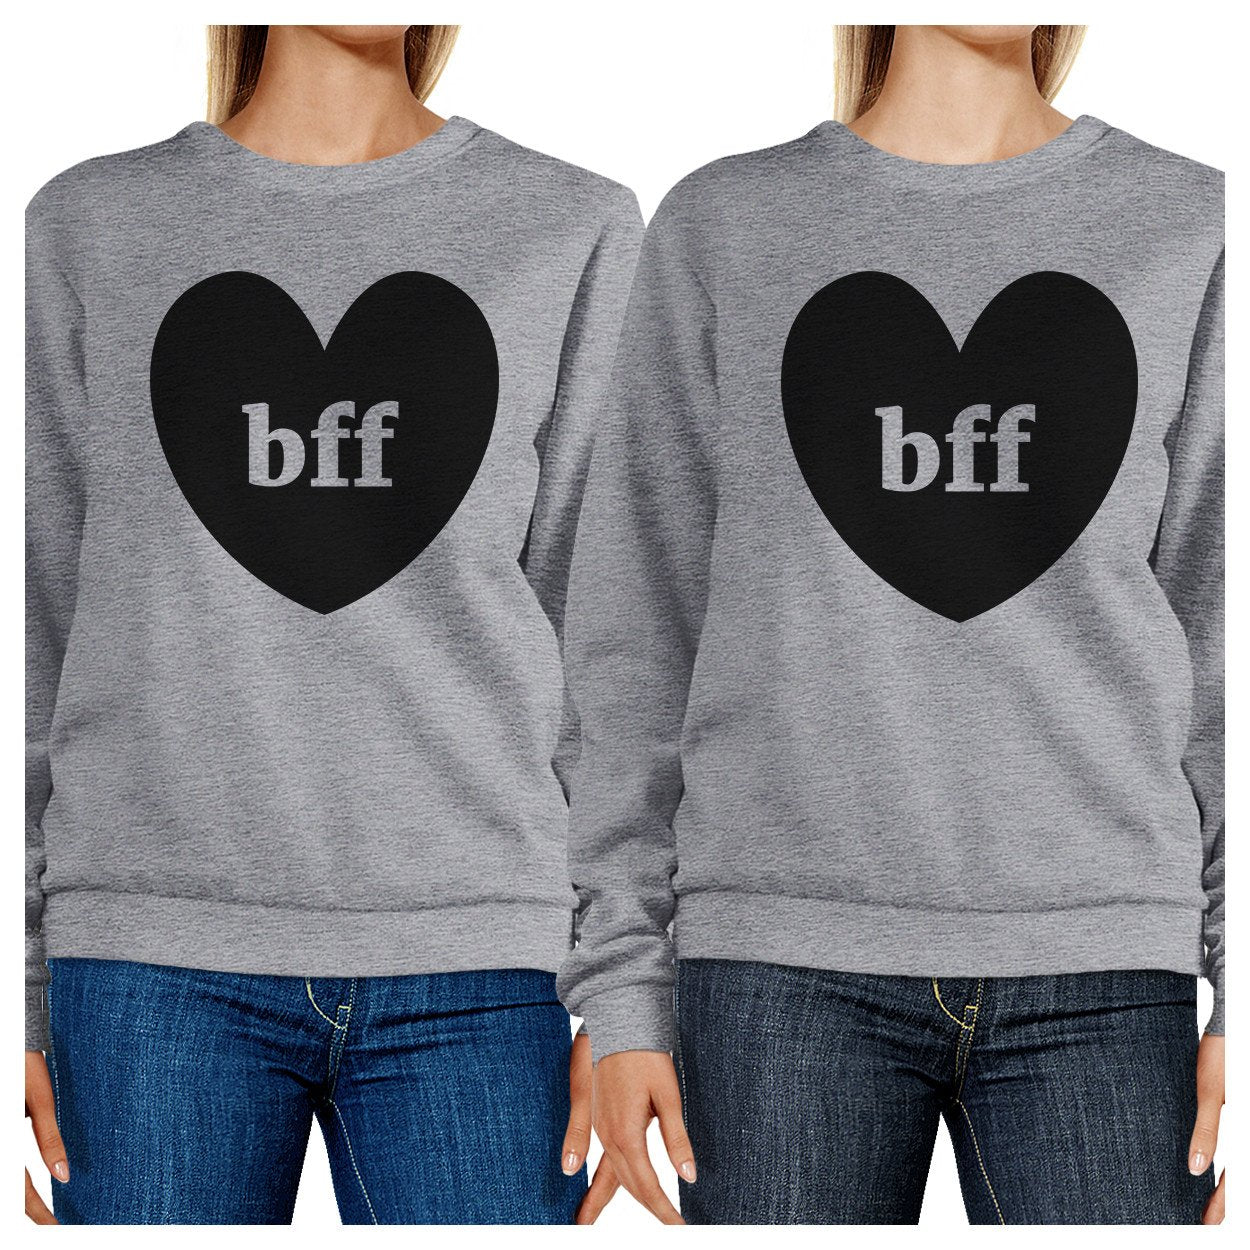 Bff Hearts BFF Matching Grey Sweatshirts